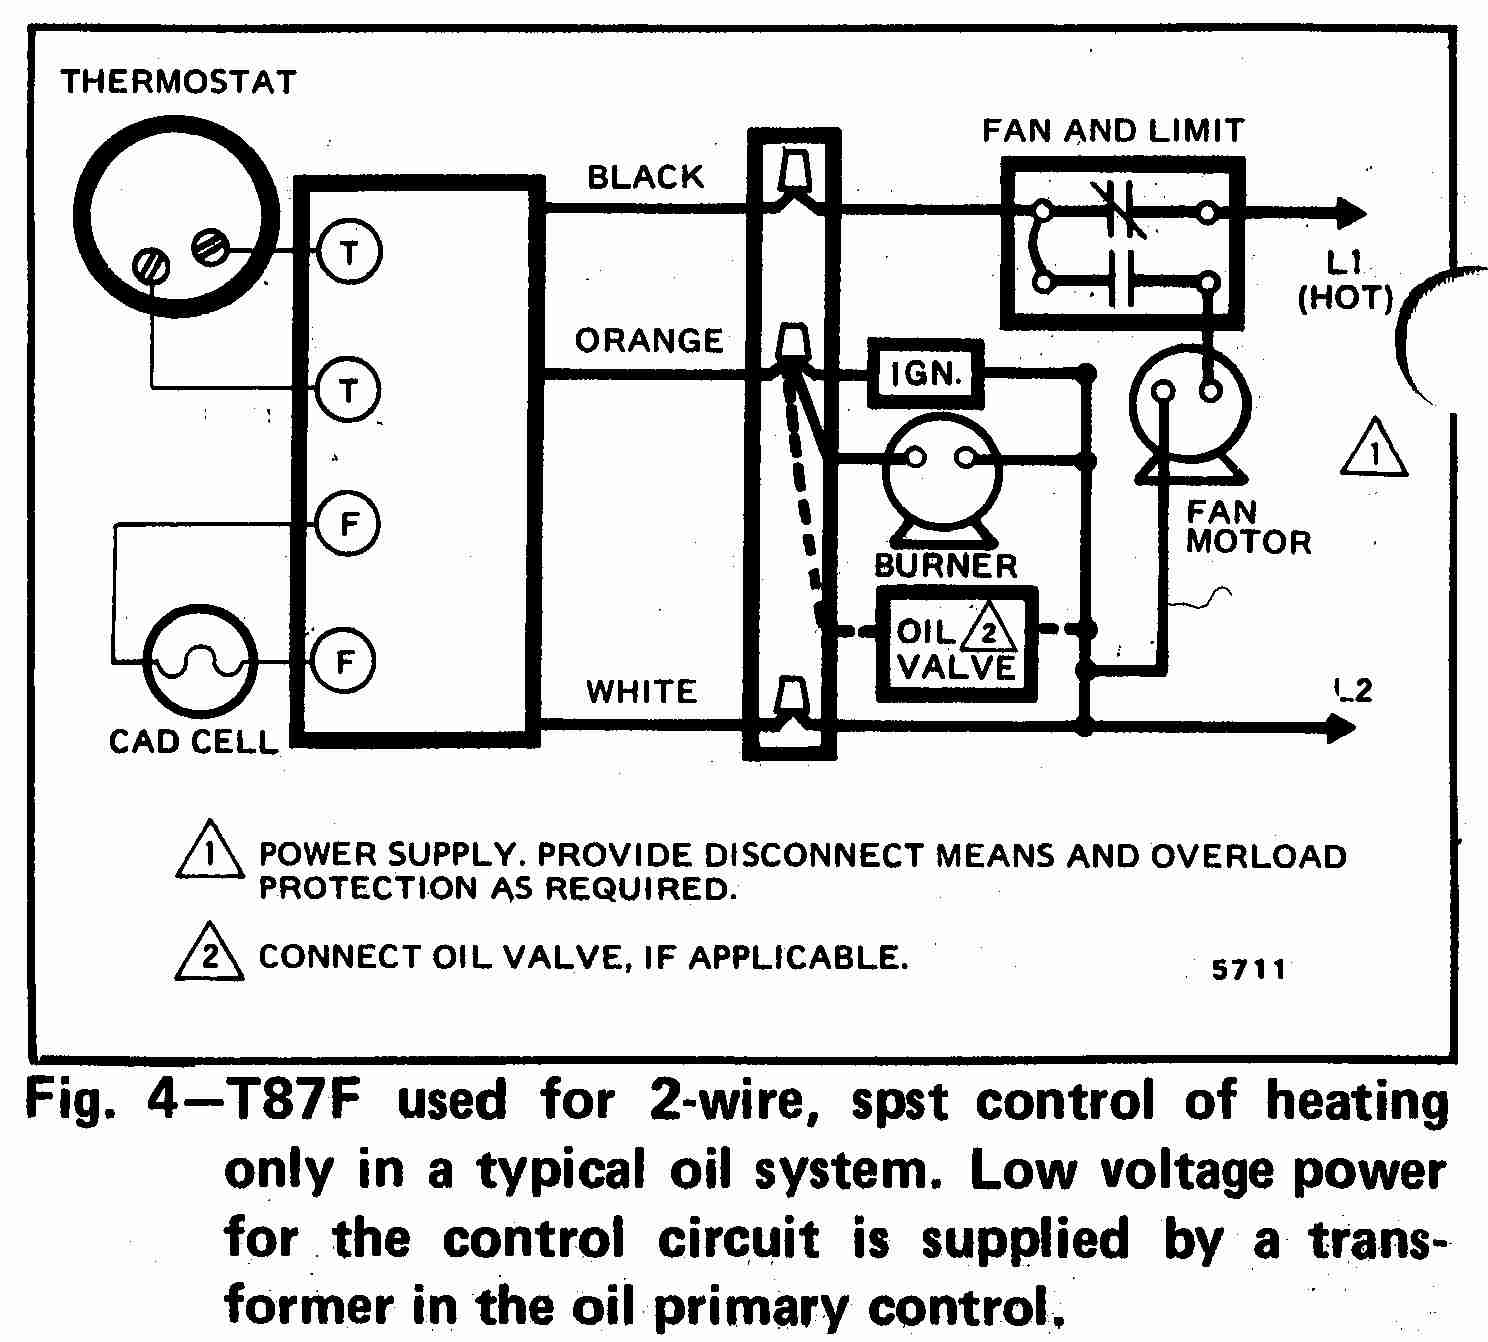 room thermostat wiring diagrams for hvac systemshoneywell t87f thermostat wiring diagram for 2 wire, spst control of heating only in